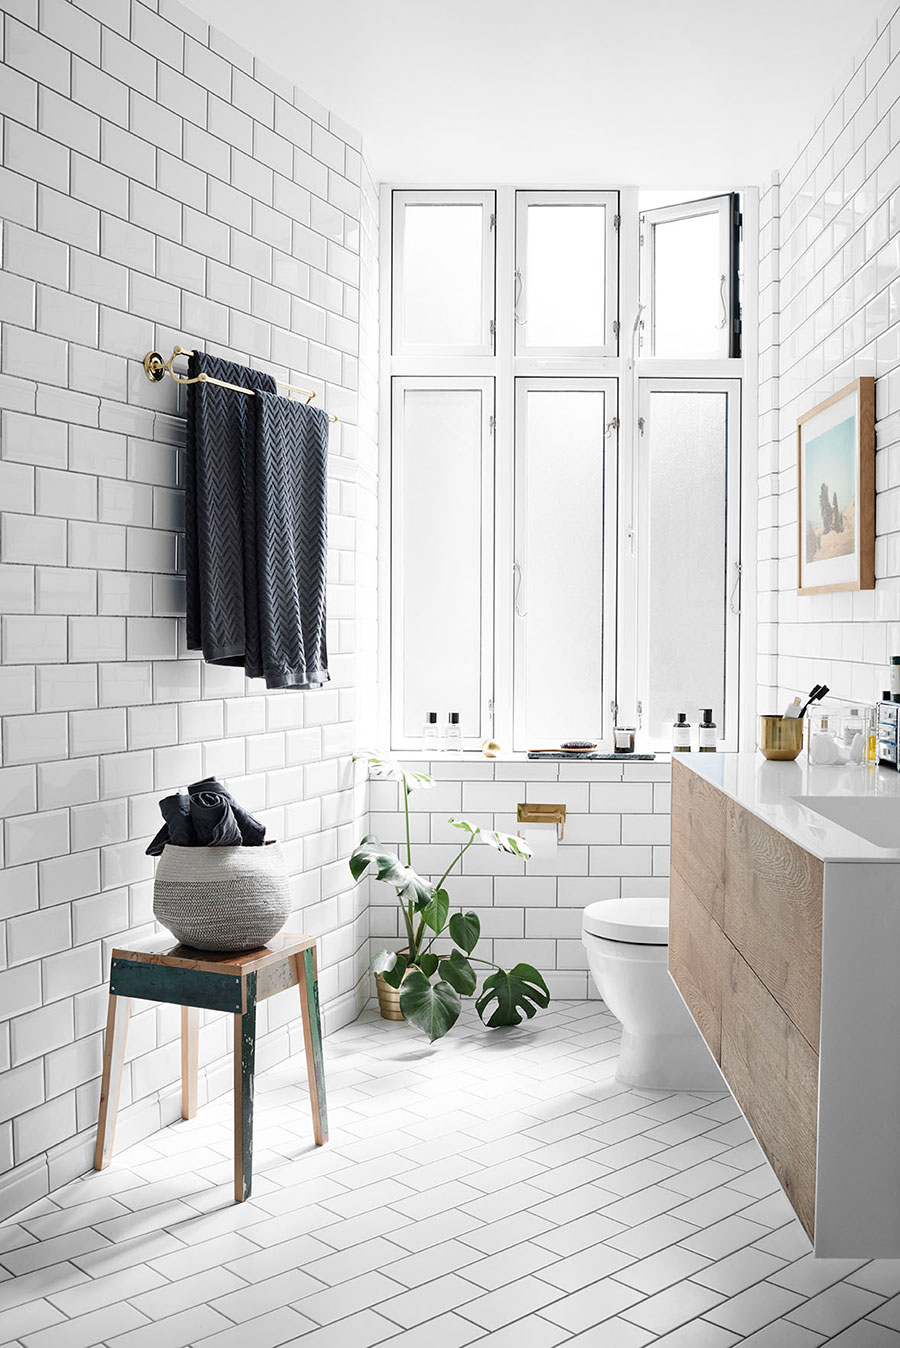 9 Tips To Make An Old Bathroom Feel New On A Budget Diy Home Decor Your Diy Family